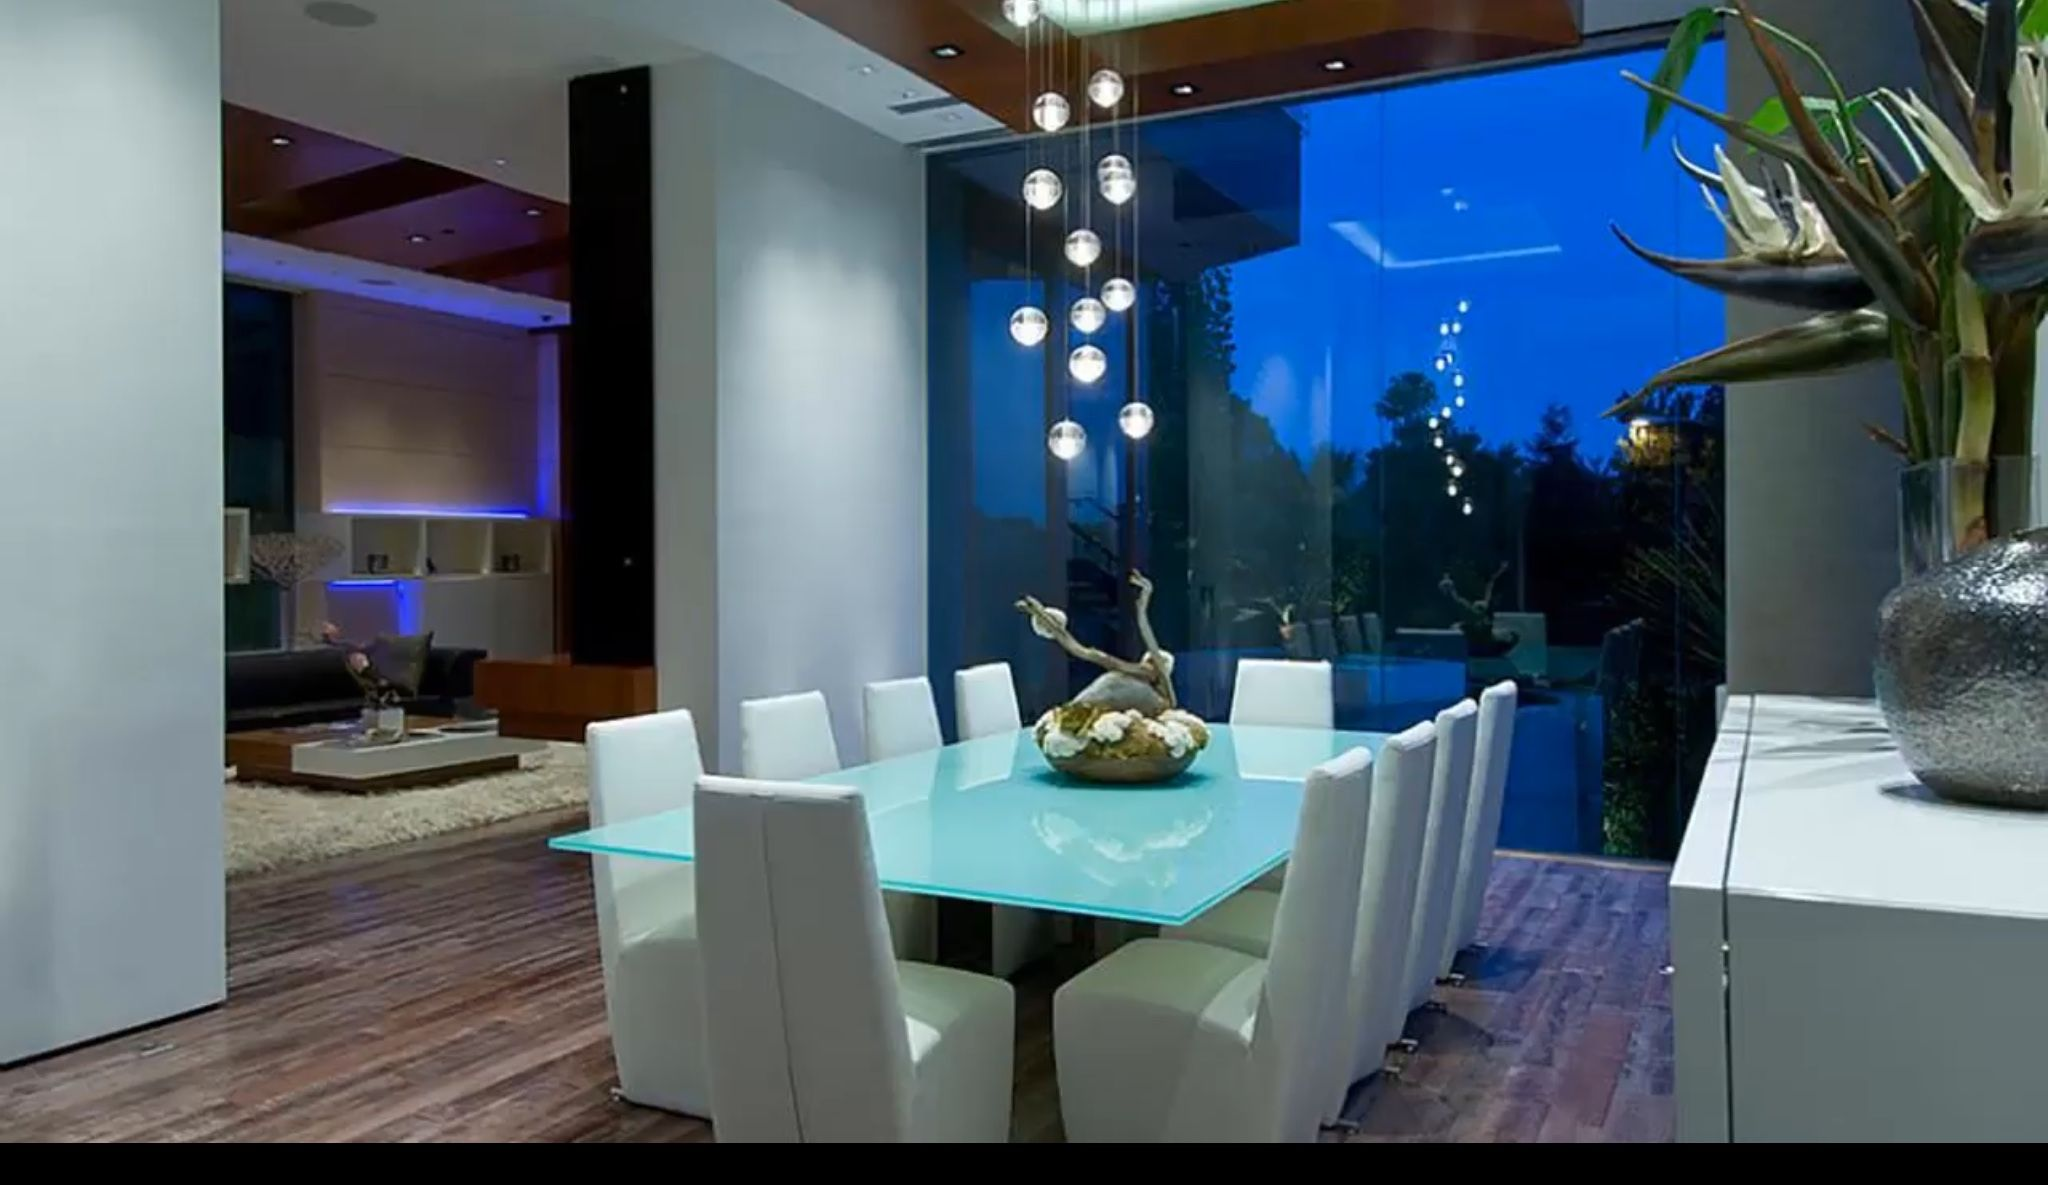 Pin By James On Dream Houses Interior Design Bill Gates S House Inside Celebrity Homes Ultimate Party House